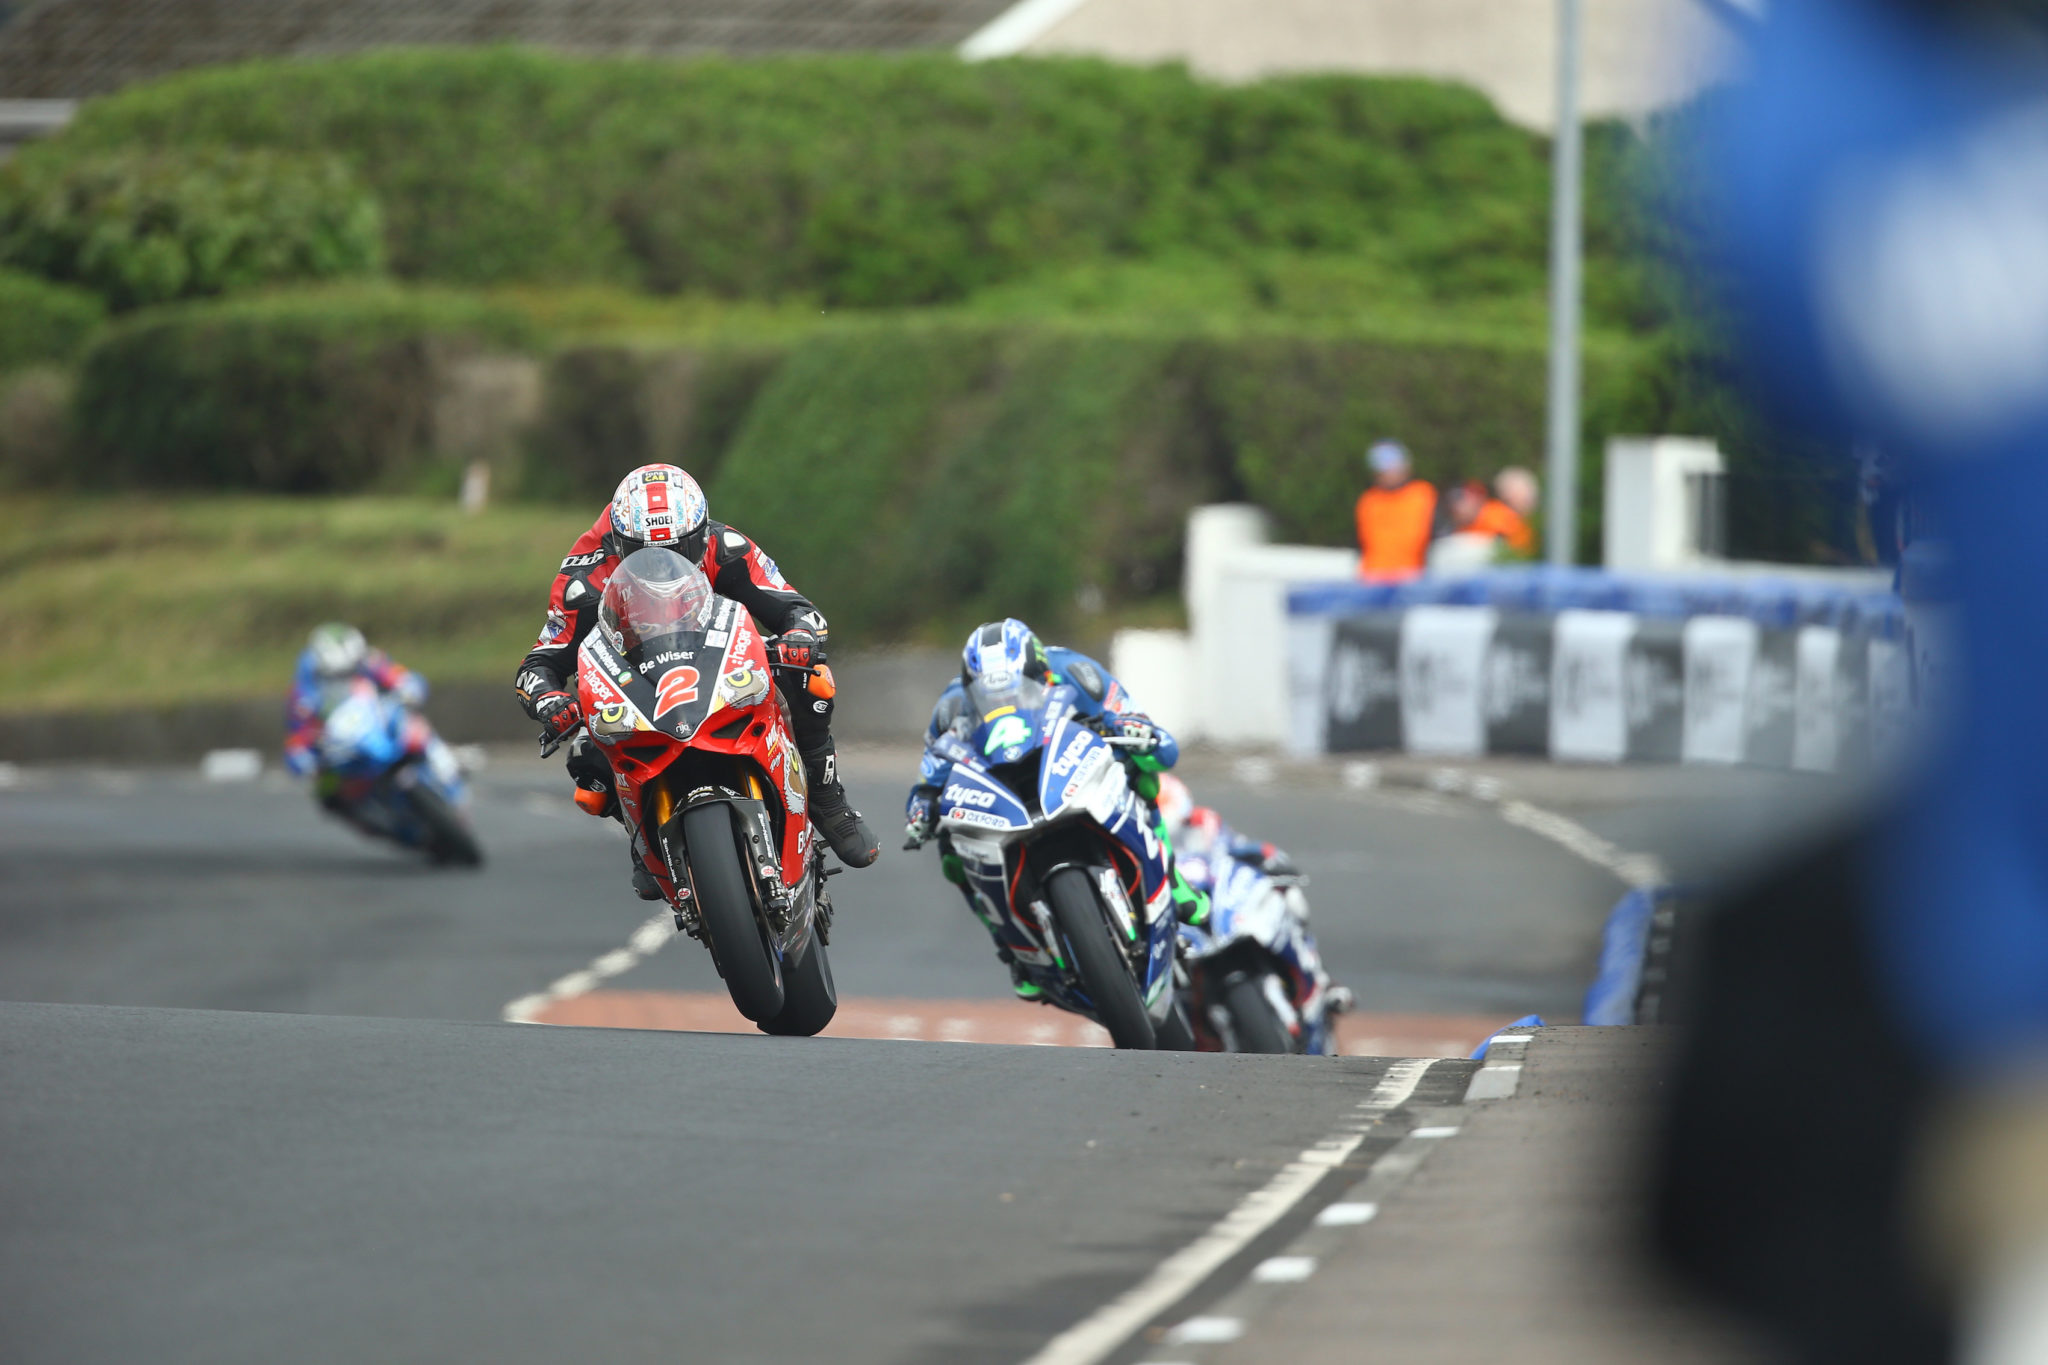 Glenn Irwin won a thrilling race at the NW200 credit Double Red